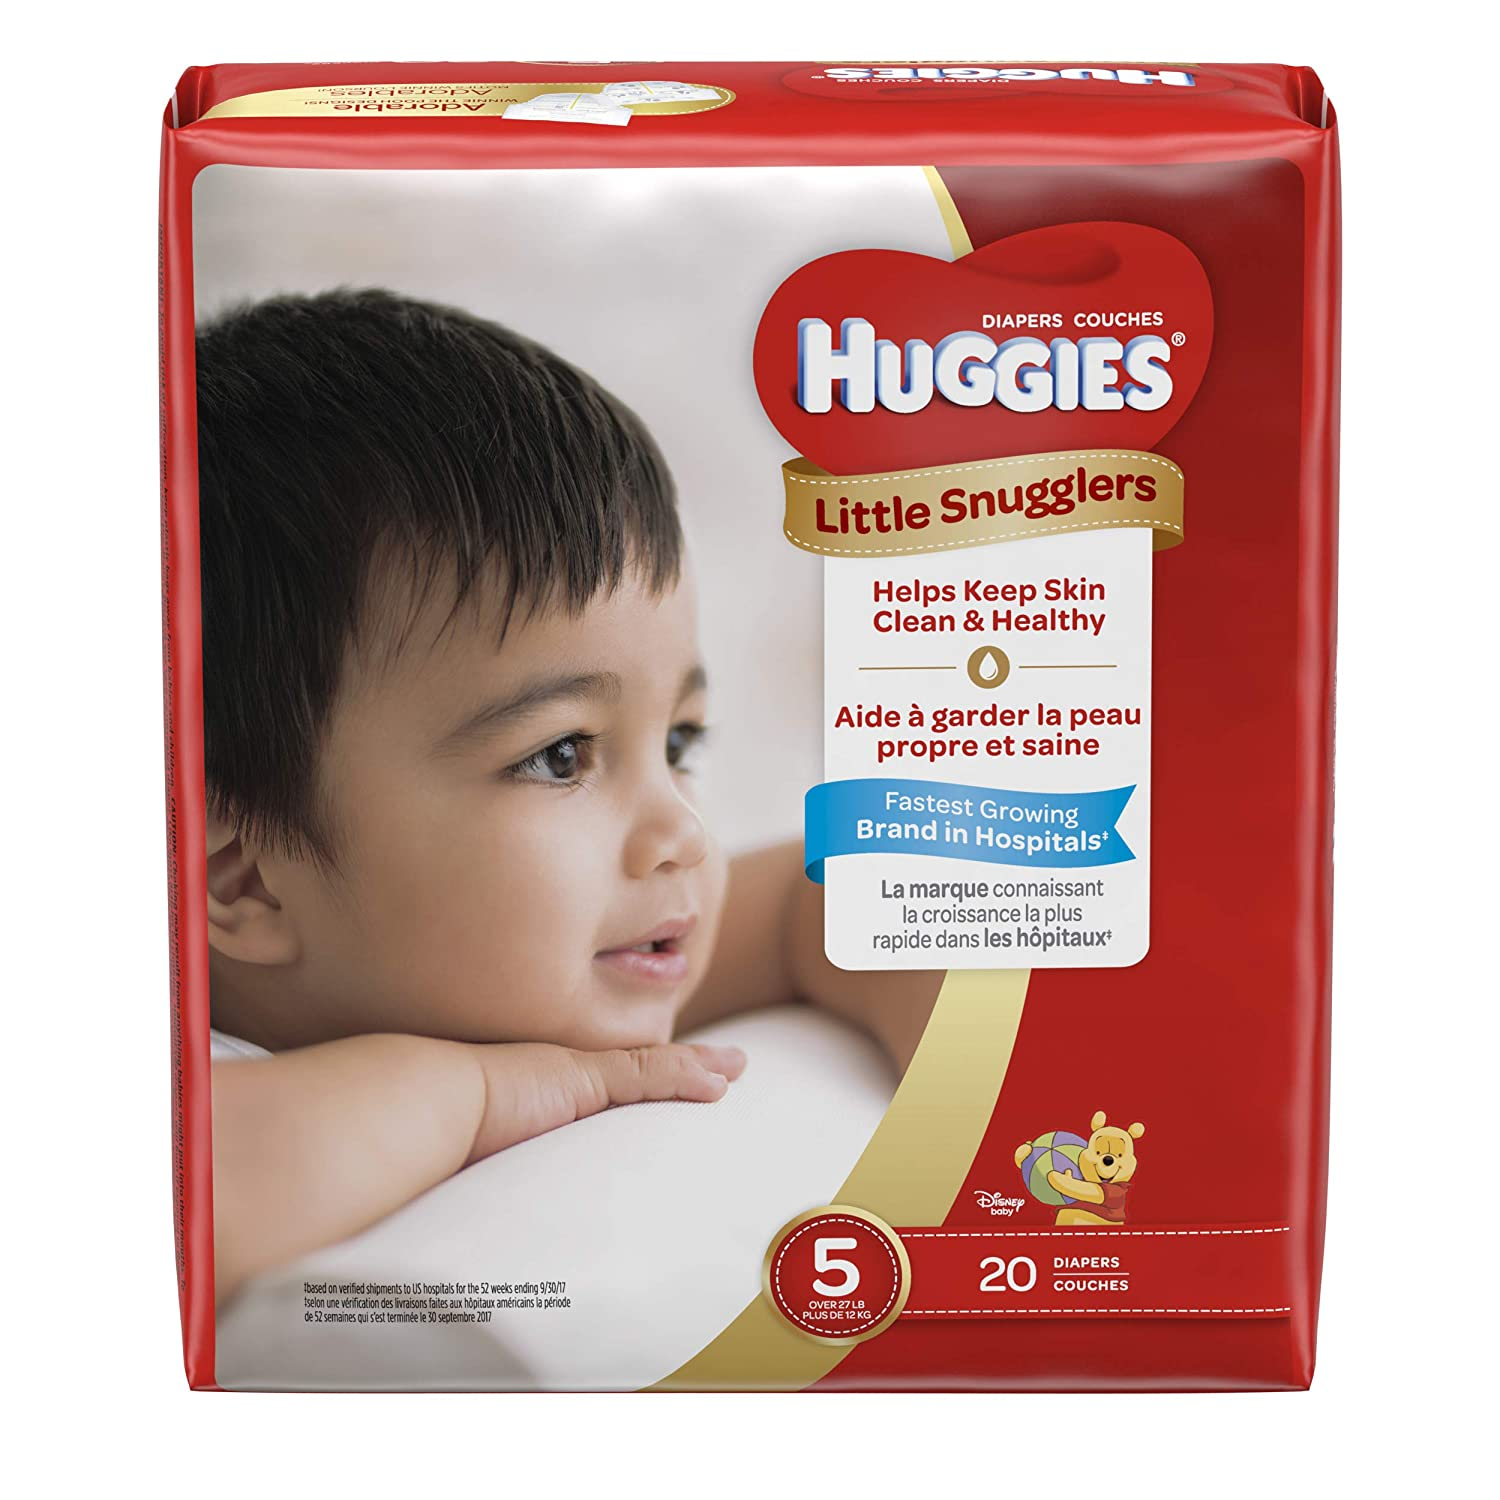 409ff3006 Amazon.com  Huggies Little Snugglers Baby Diapers  Health   Personal Care